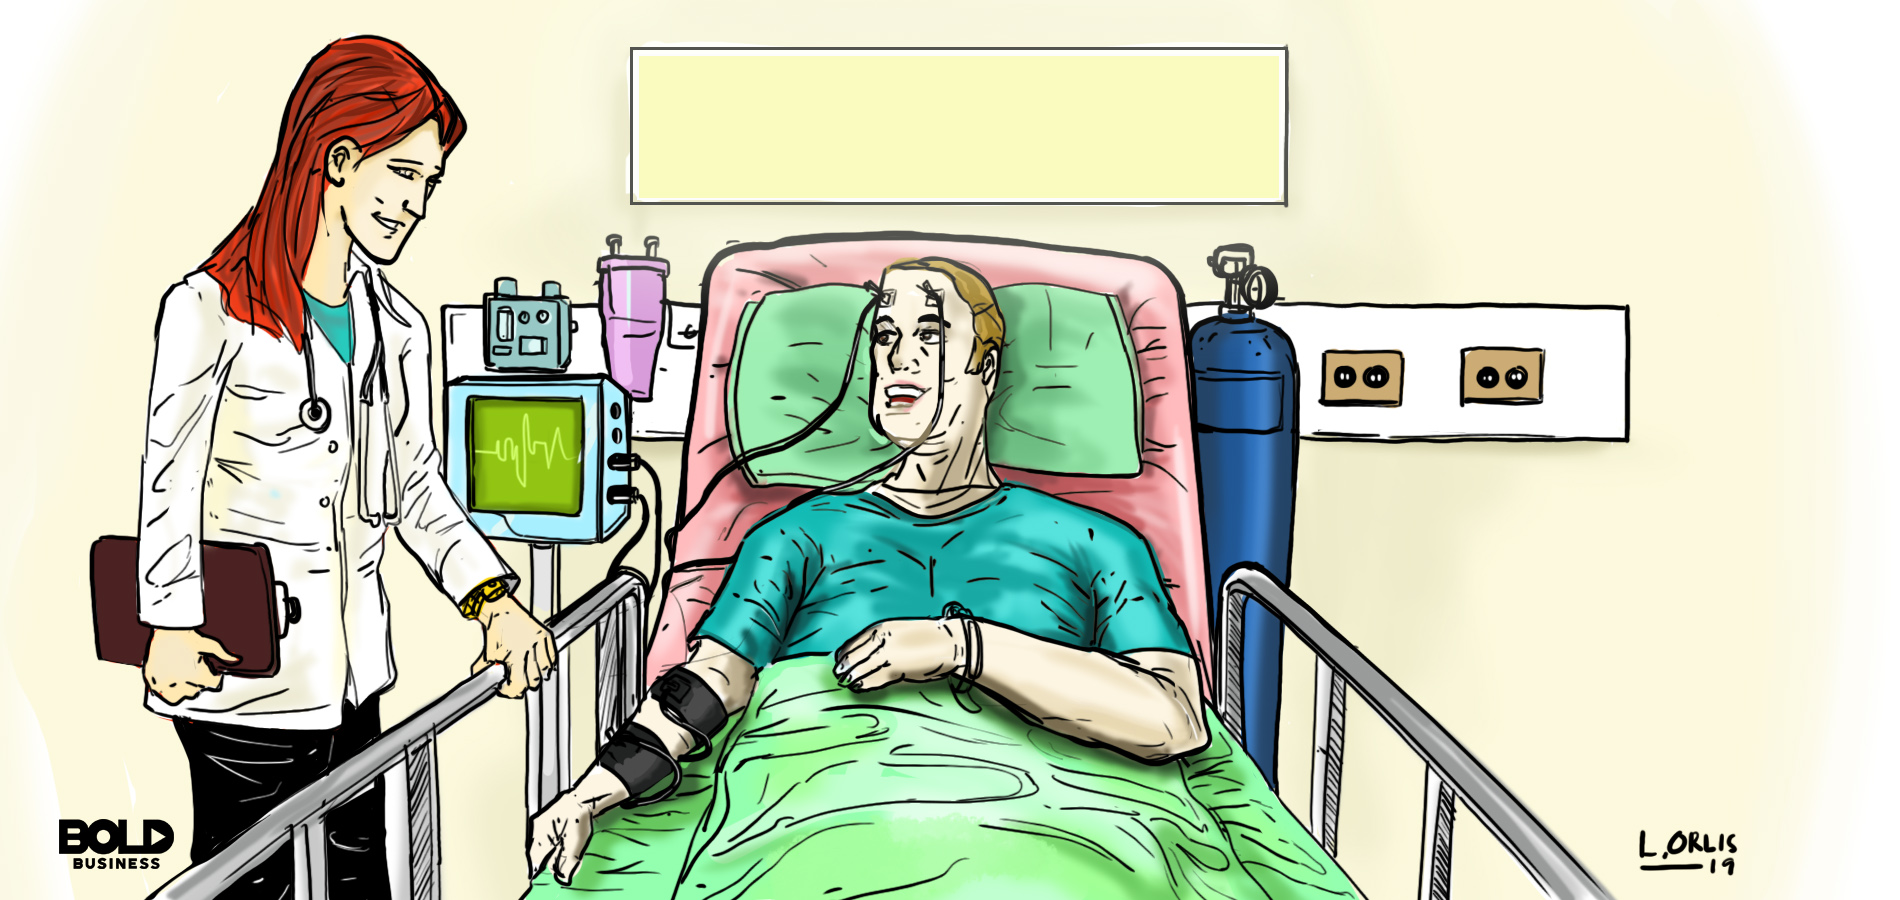 cartoon of a man with ALS disease symptoms laying on a hospital bed while a female doctor talks with him